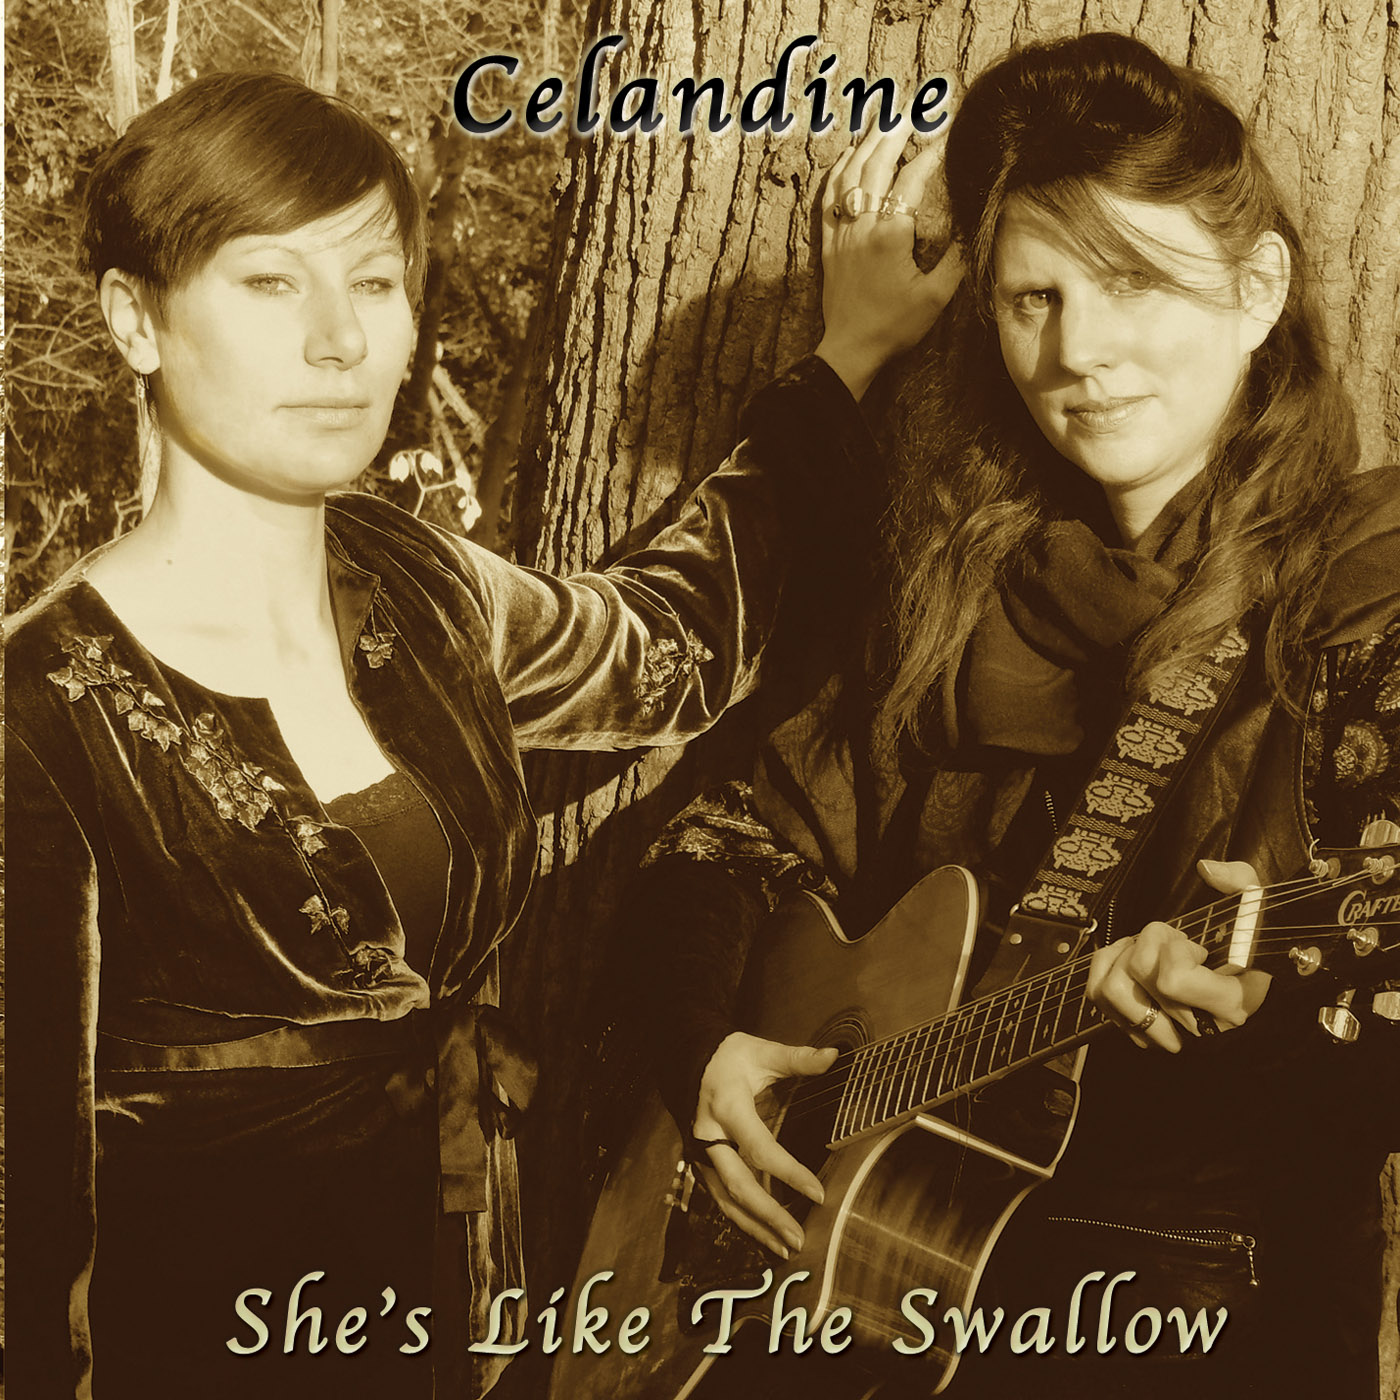 Celandine - She's Like The Swallow 1500